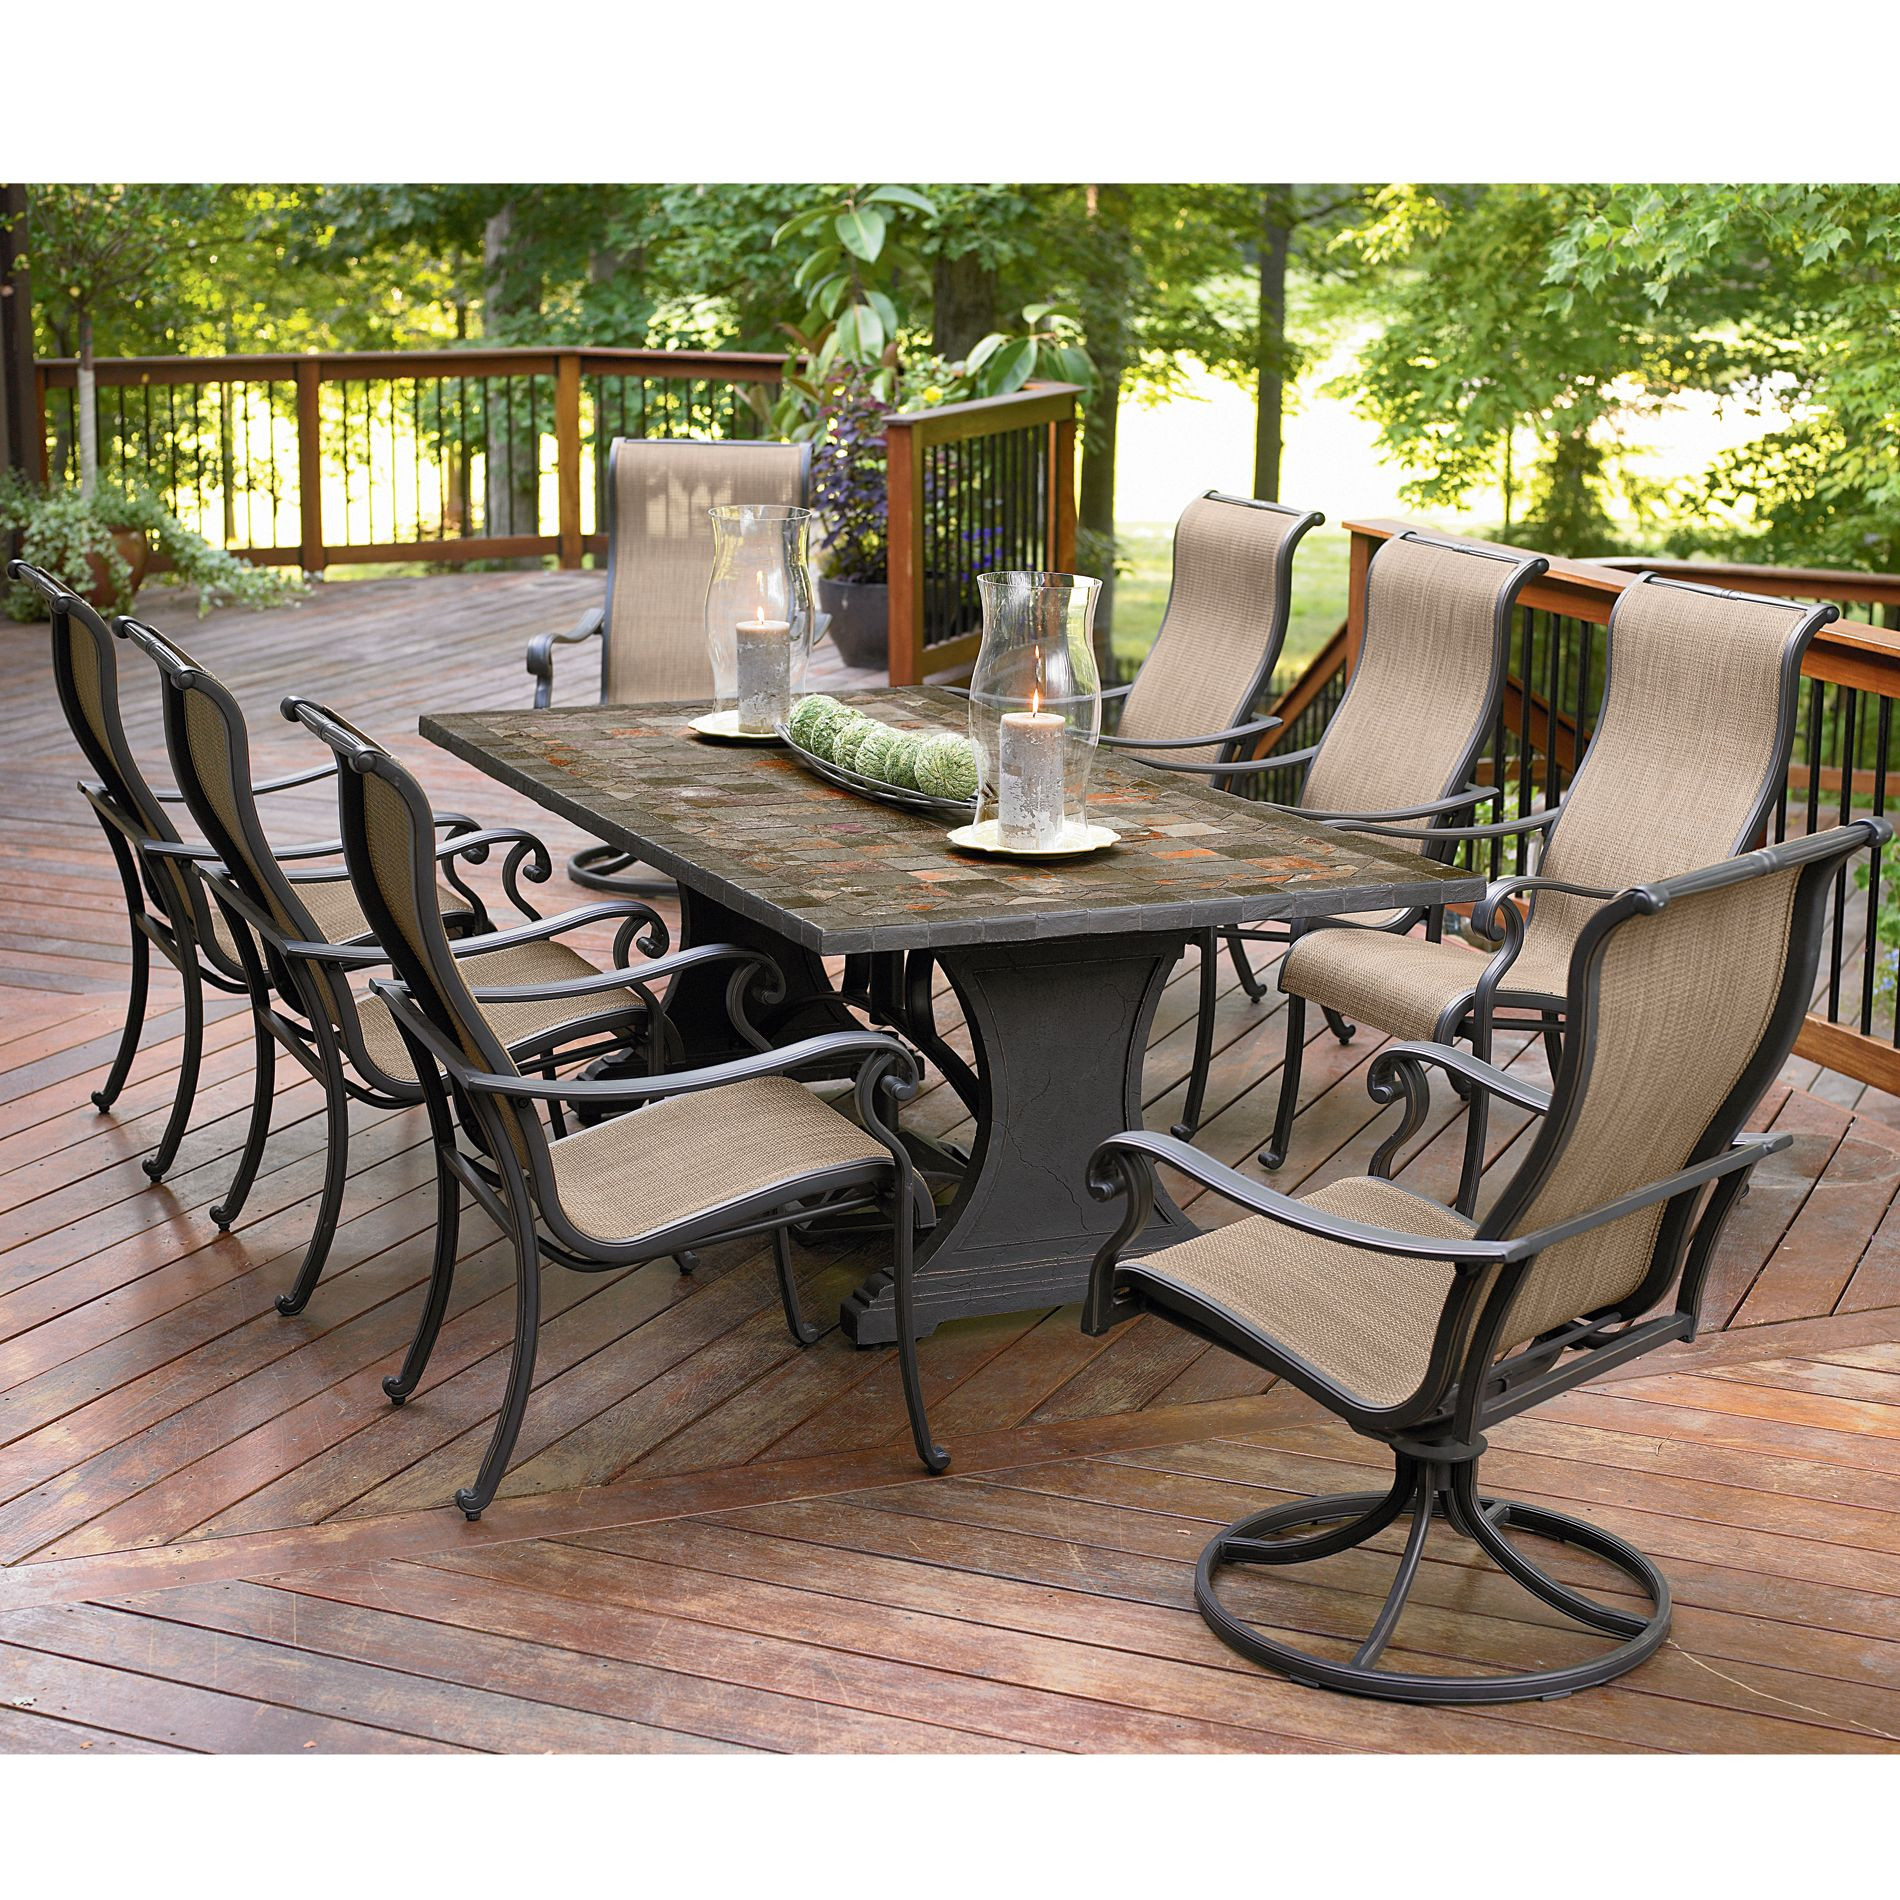 Best ideas about Patio Dining Sets On Sale . Save or Pin patio dining sets clearance sale Now.